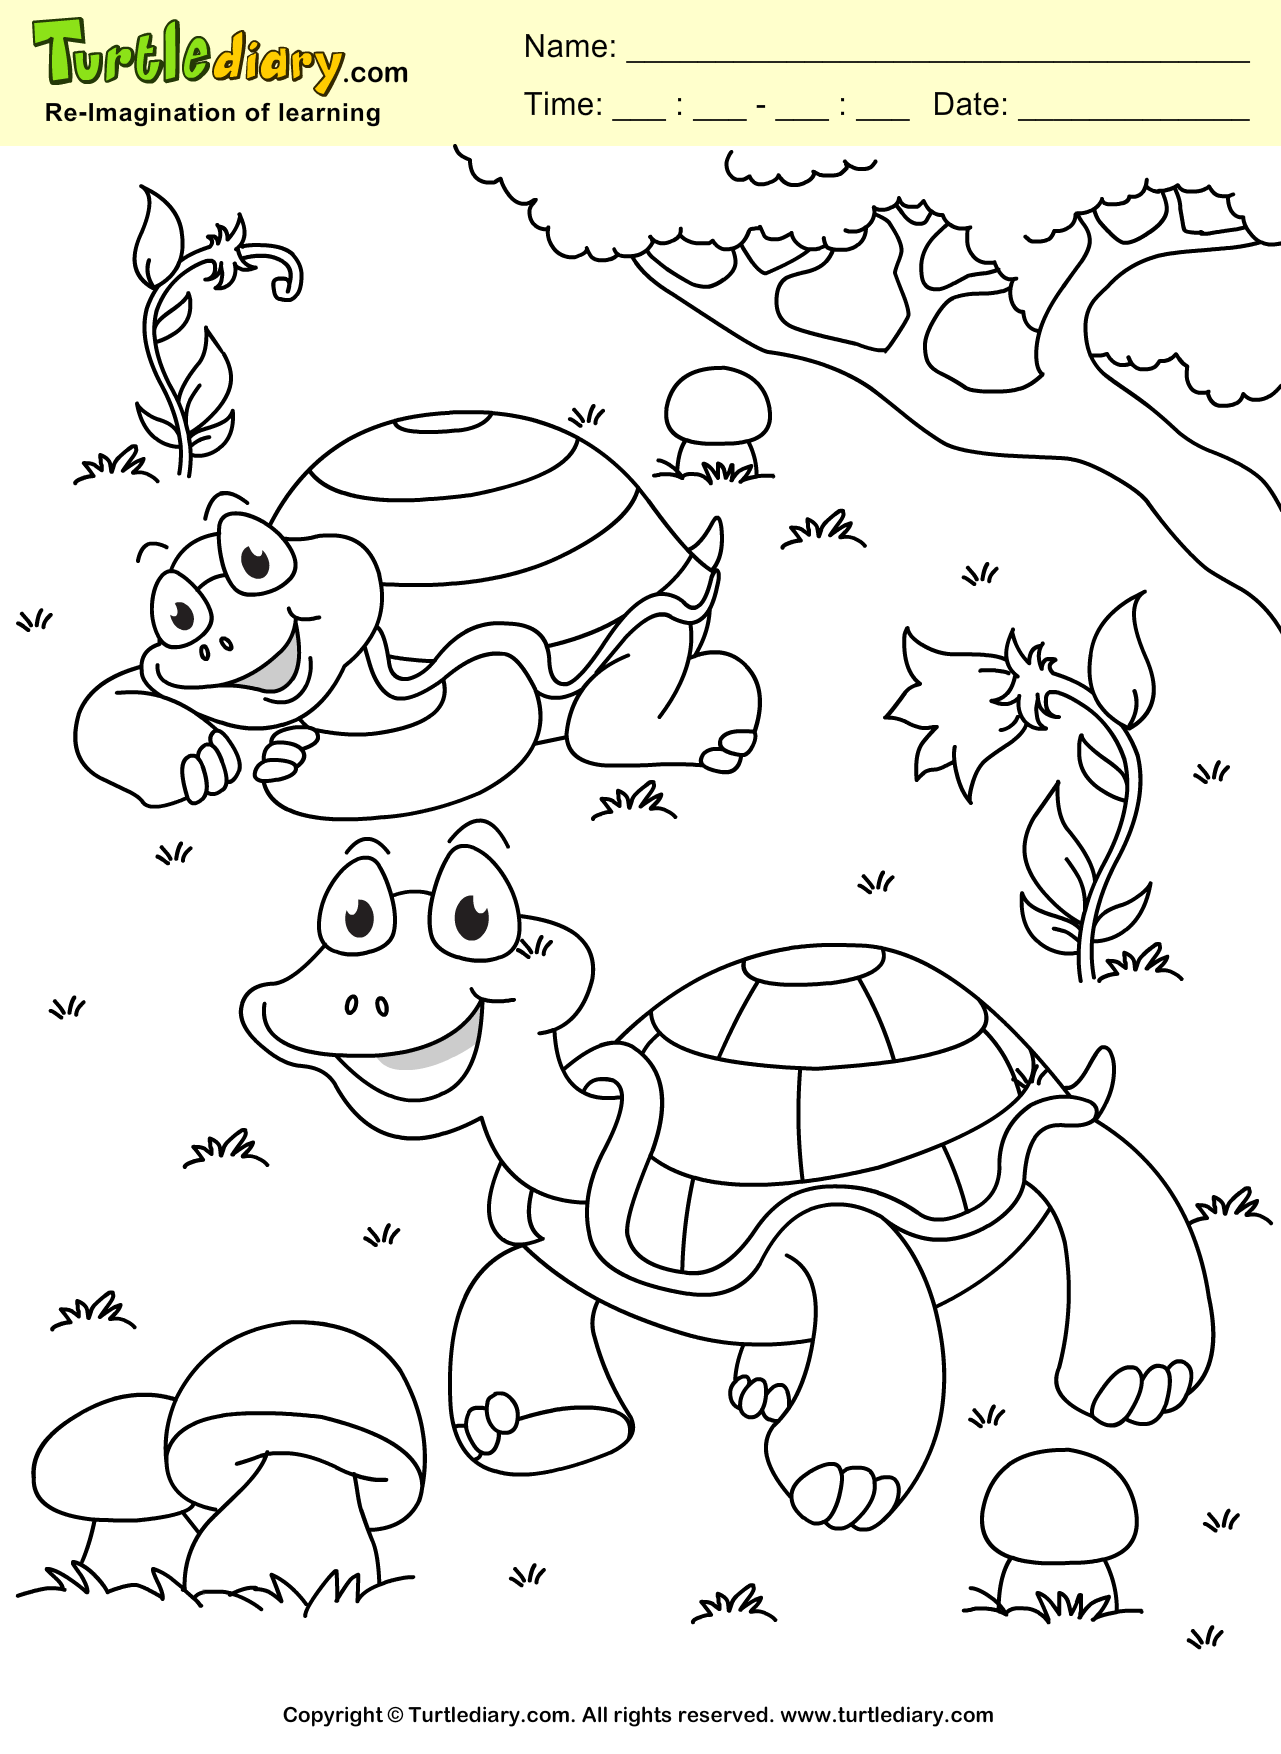 Spring coloring pages and crafts - Turtle Spring Coloring Page Kids Crafts Coloring Turtlediary Childeducation